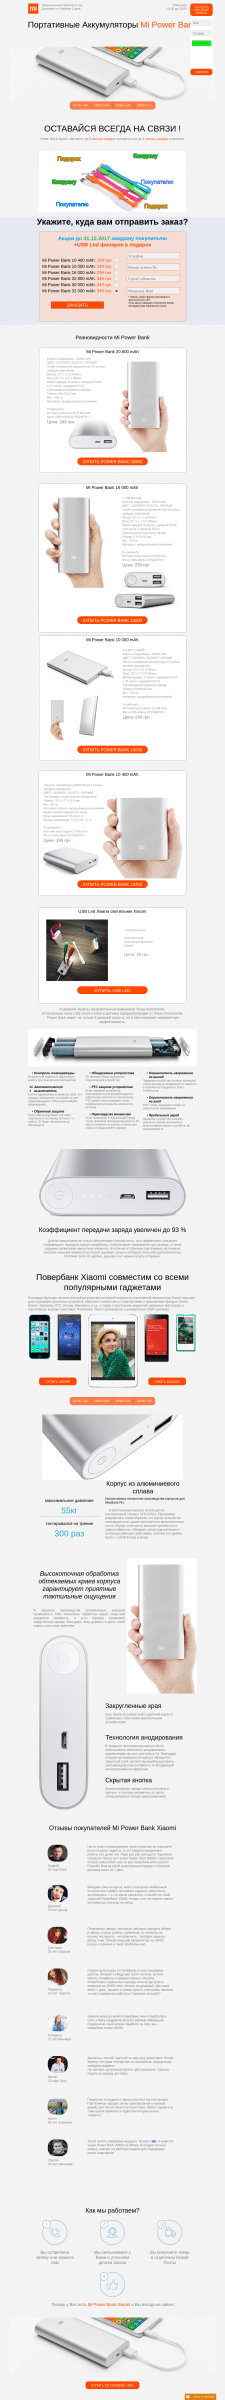 [Лендинг] Продажа Power Bank